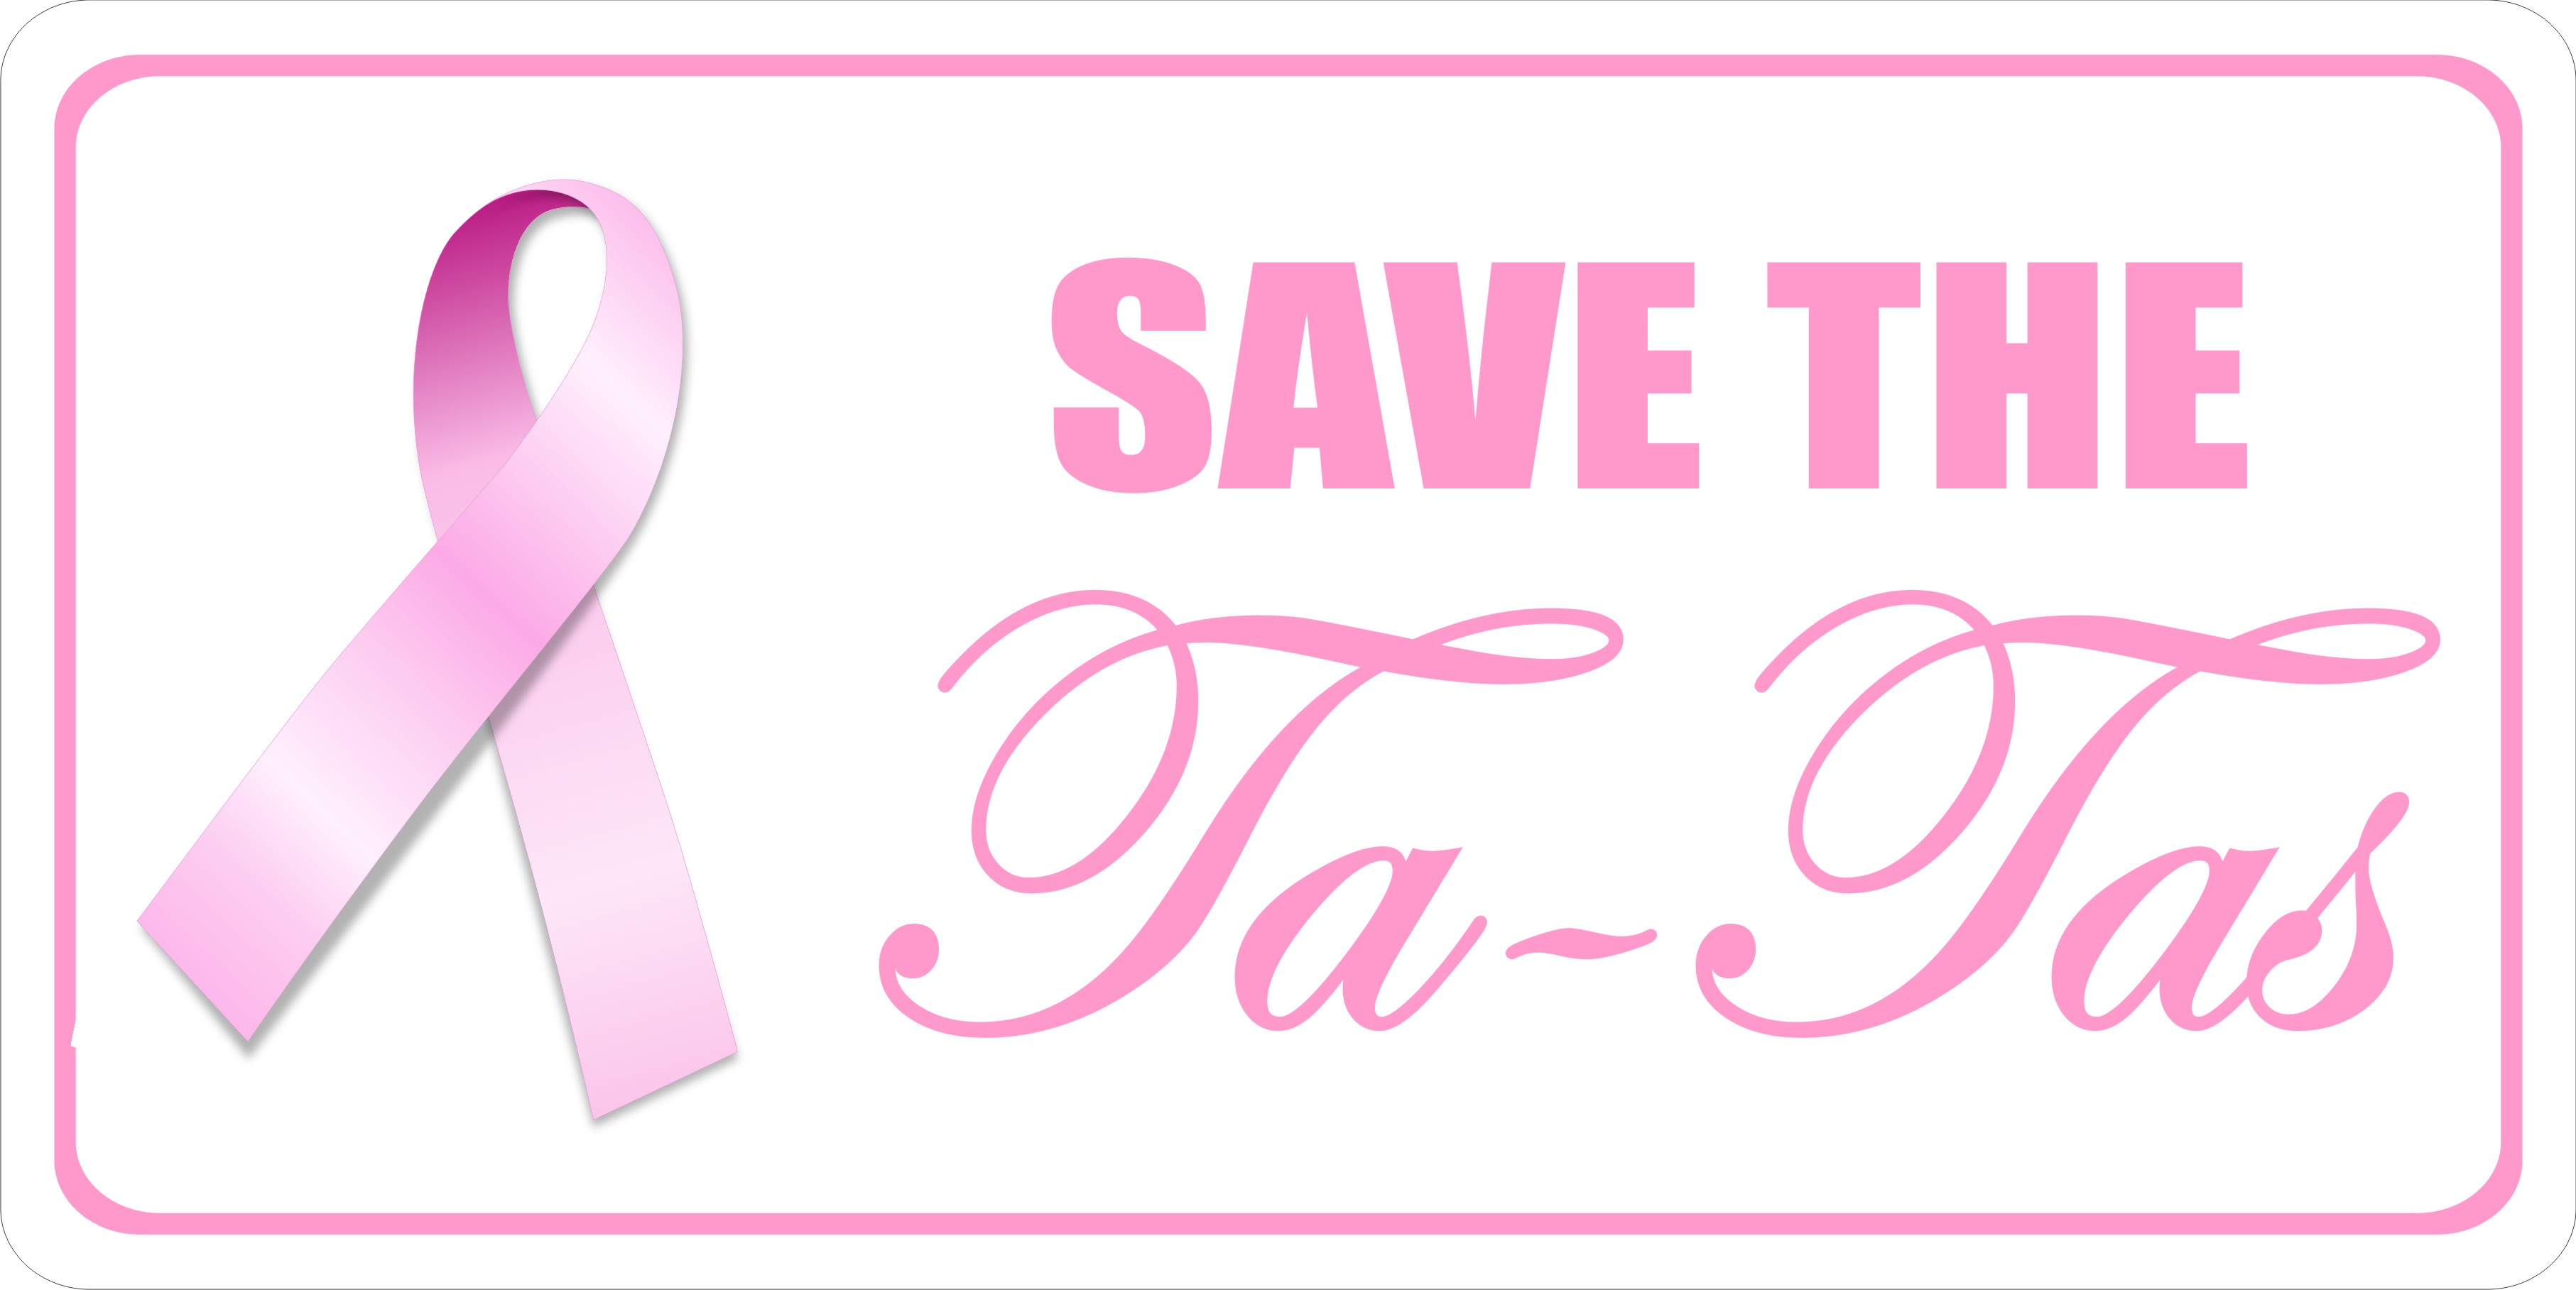 Wholesale Breast Cancer Now Available At Wholesale Central